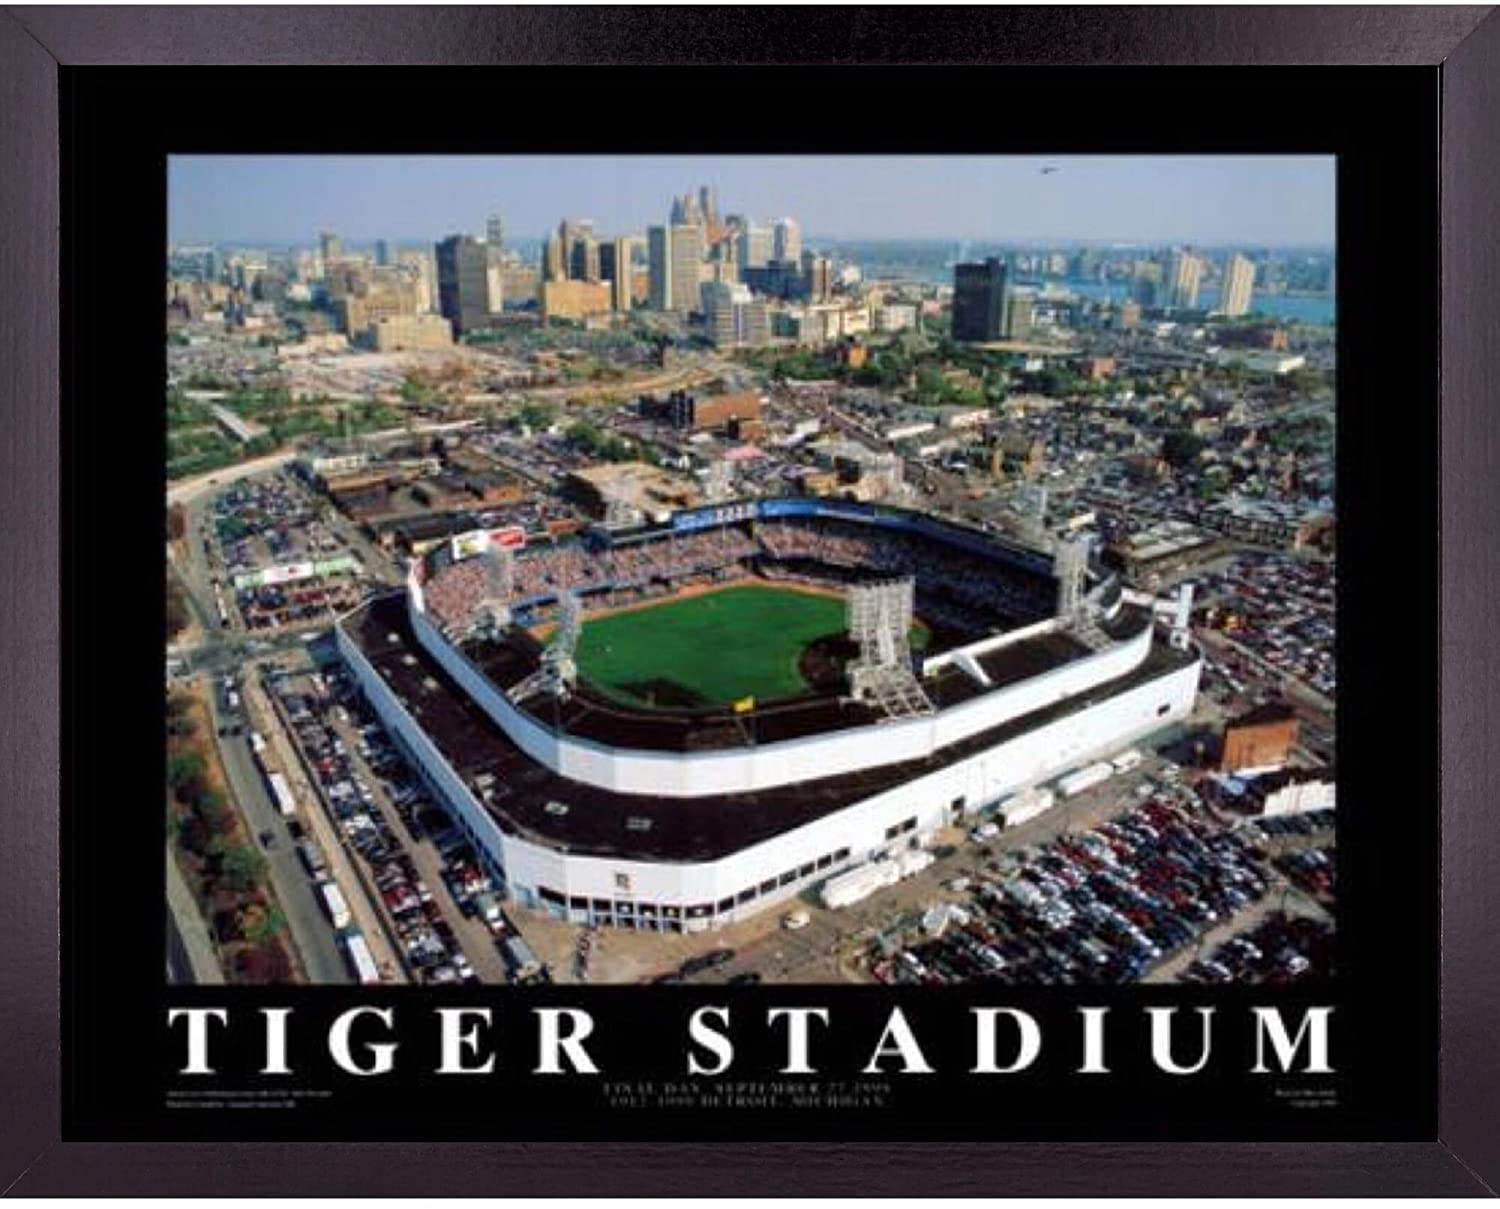 Detroit Tigers Baseball Stadium Poster Wall Art Decor Framed Print | 23 x 29 | Final MLB Game at Tiger Field & Ball Park | Aerial Posters & Pictures | Fan Gifts for Guys & Girls College Bedroom Walls